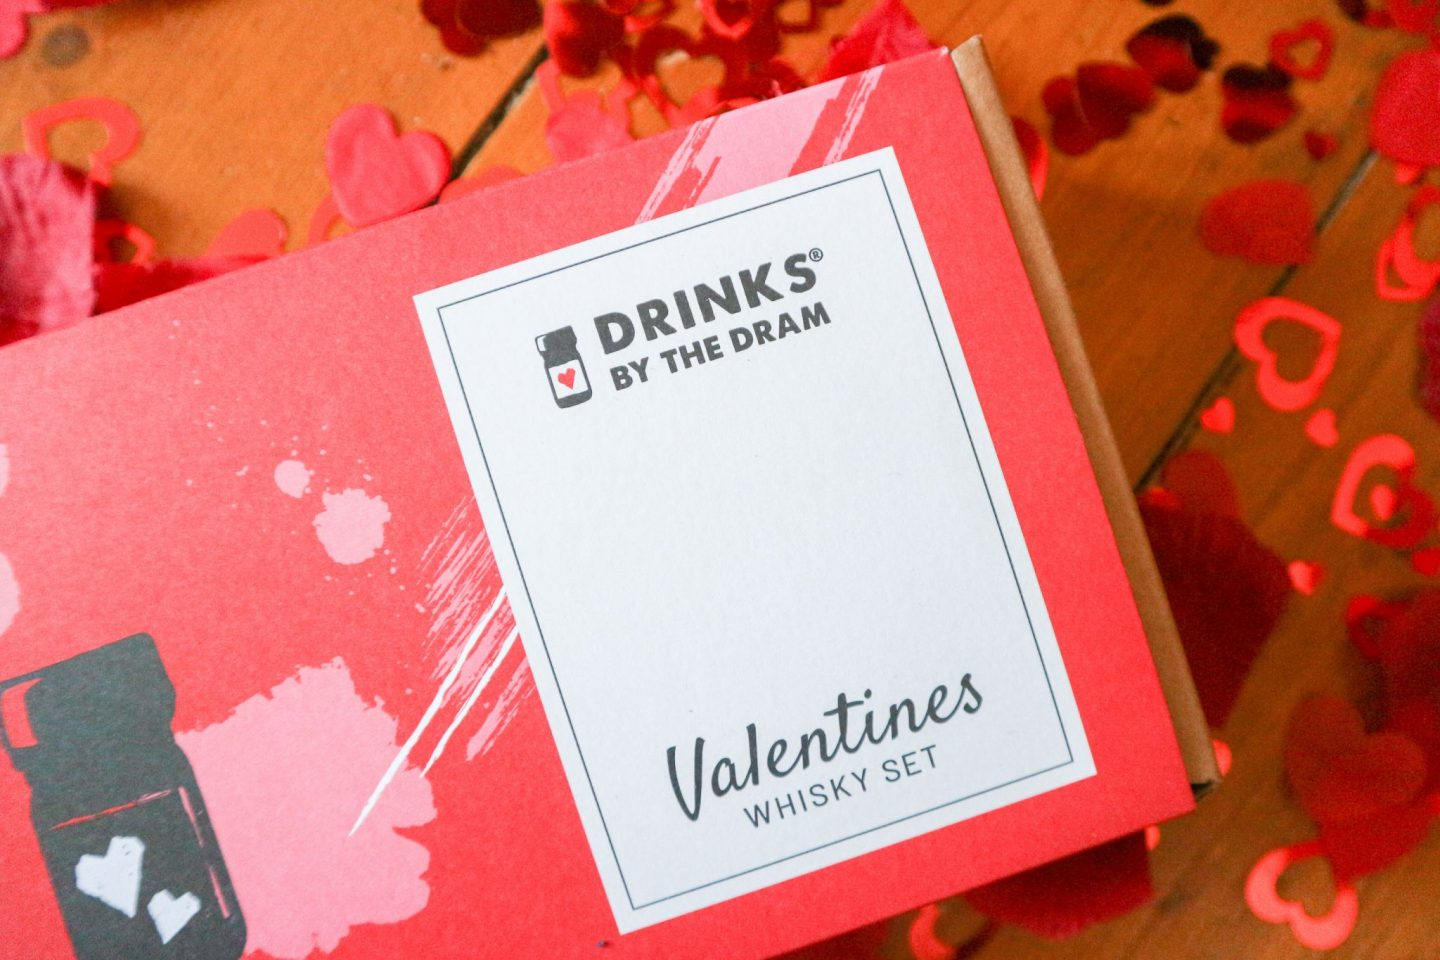 Drinks by the Dram Valentine's Whisky Set